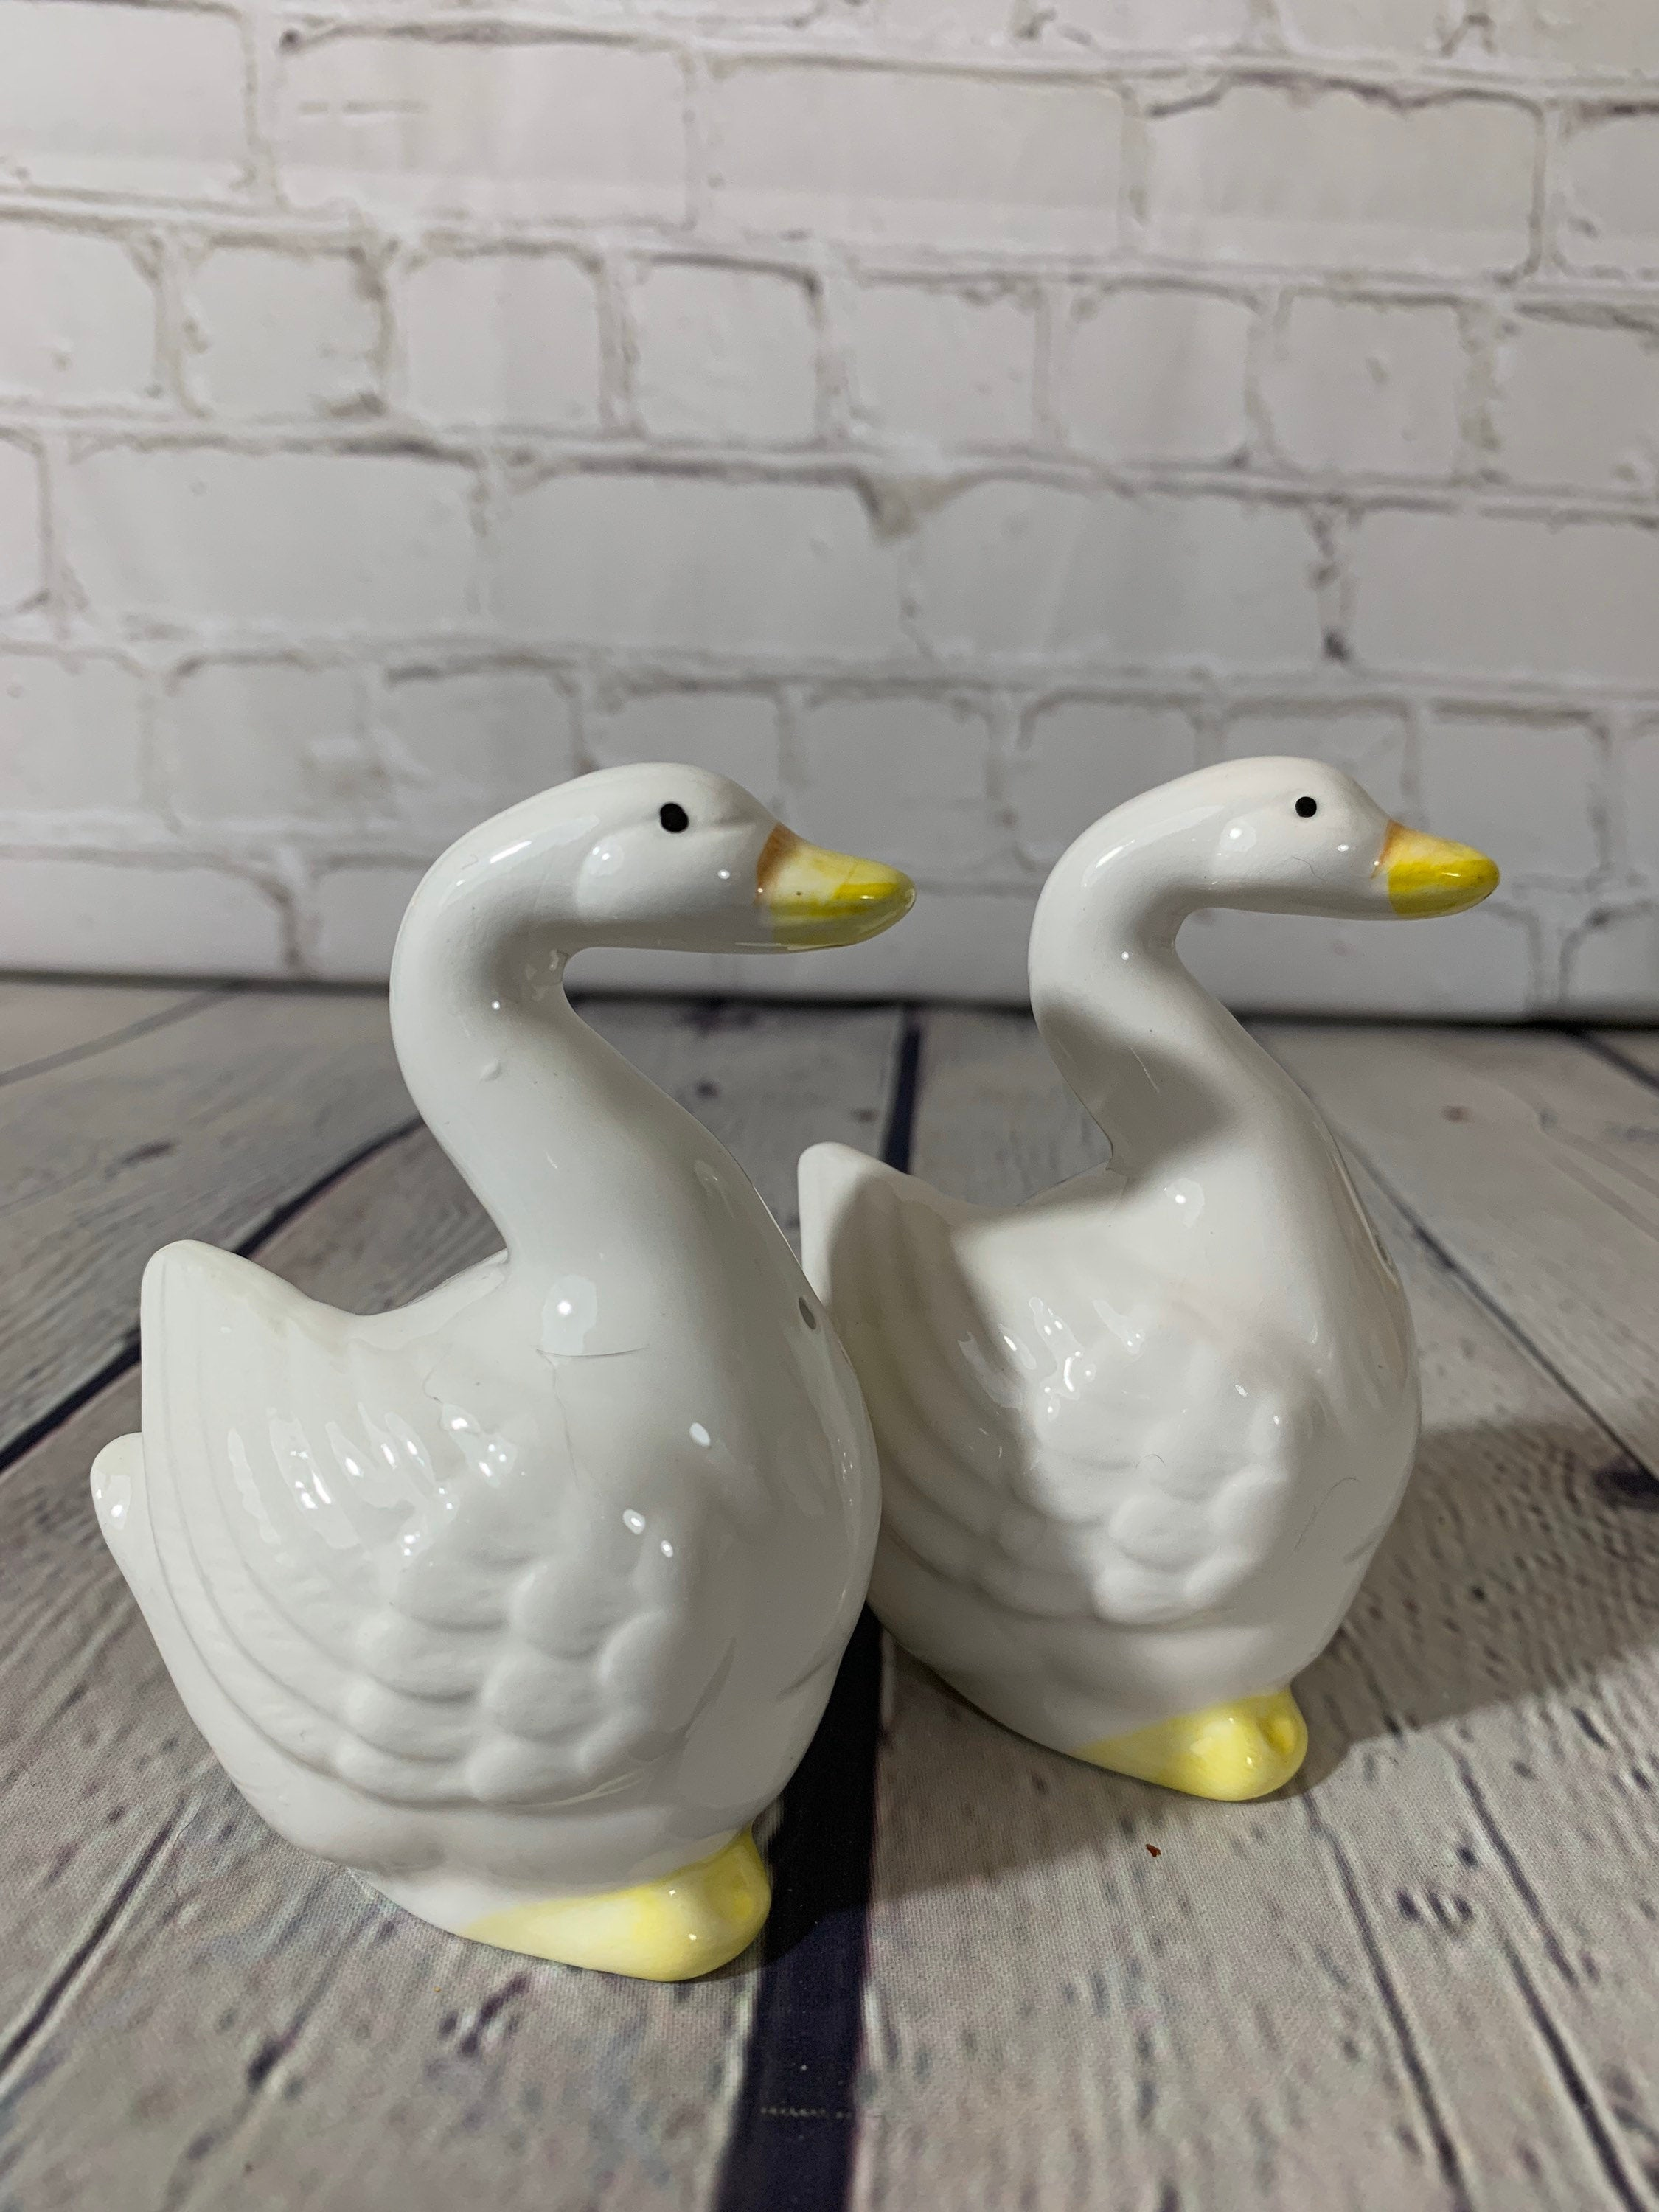 Vintage Porcelain Duck Salt & Pepper Shakers by Ron Gordon Designs-Korea